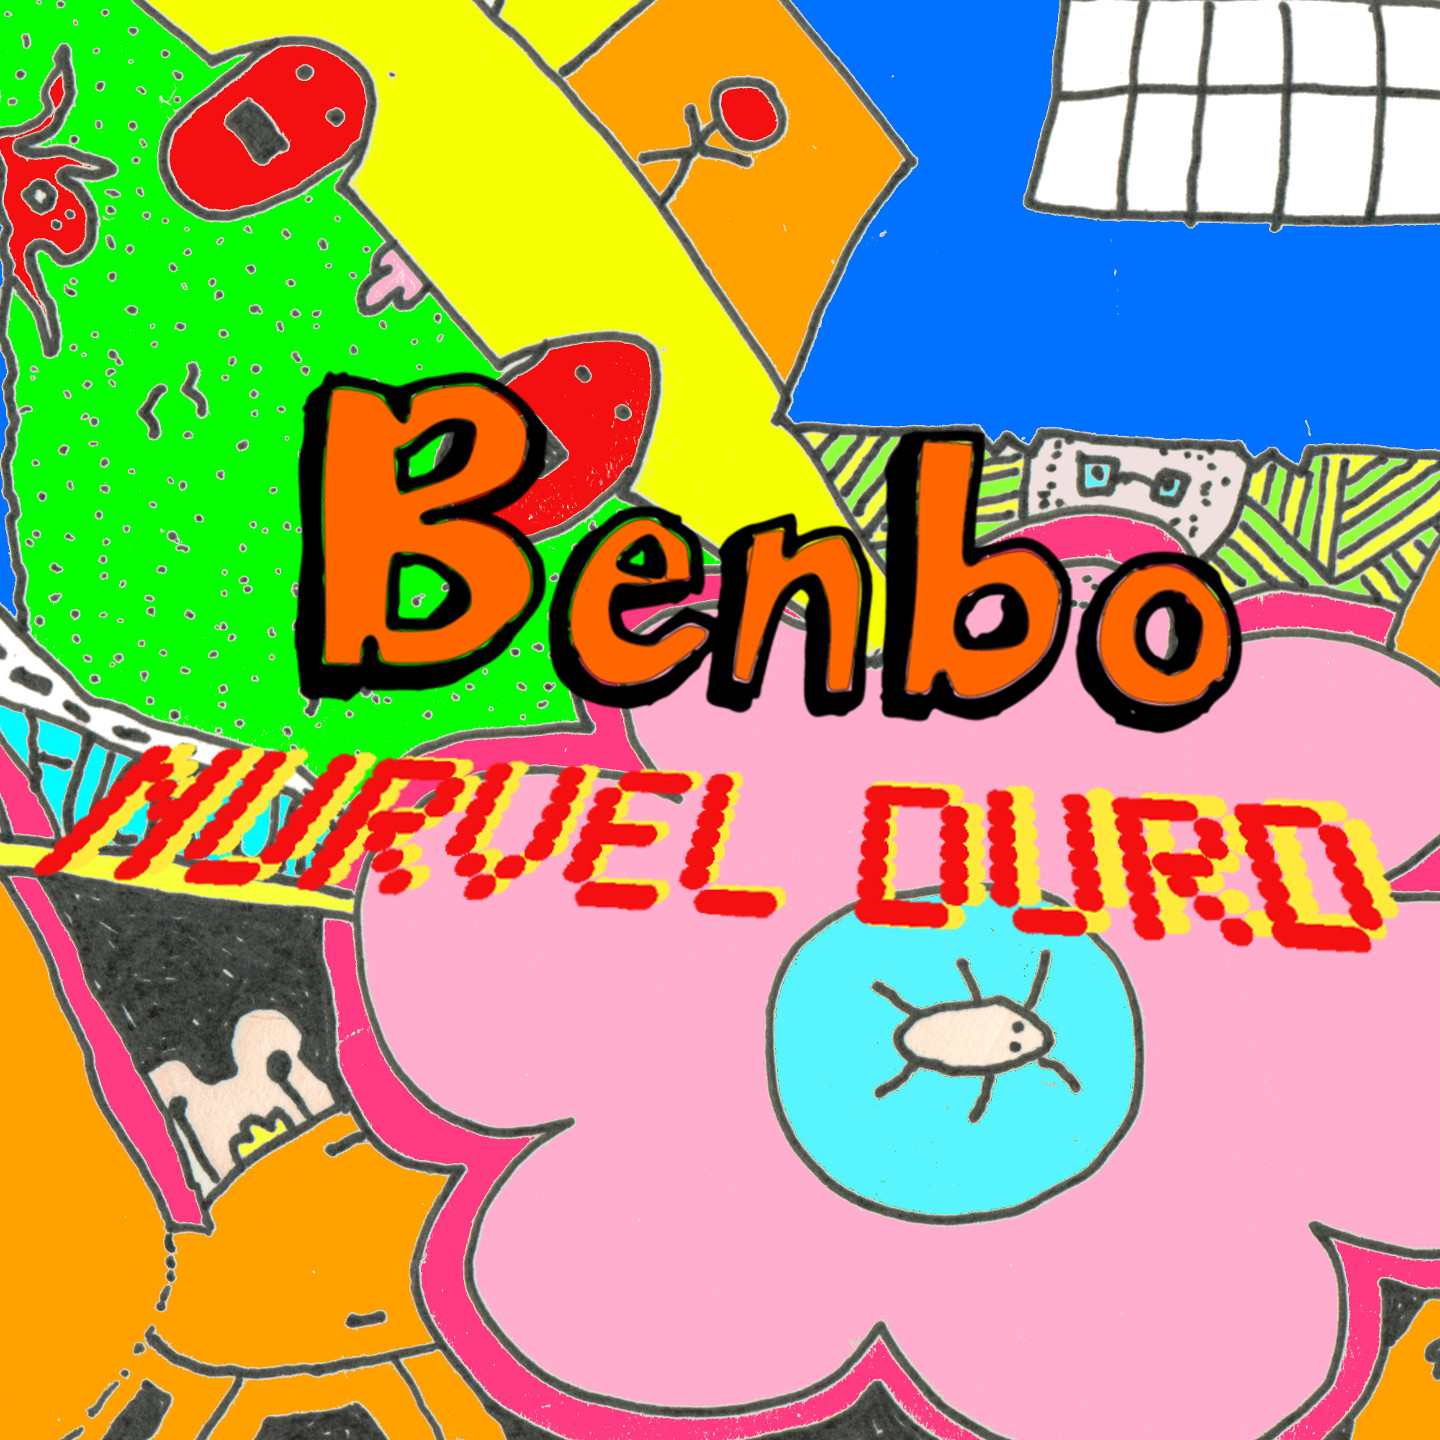 BENBO_Nurvel_Durd_PinkLizardMusic_medium